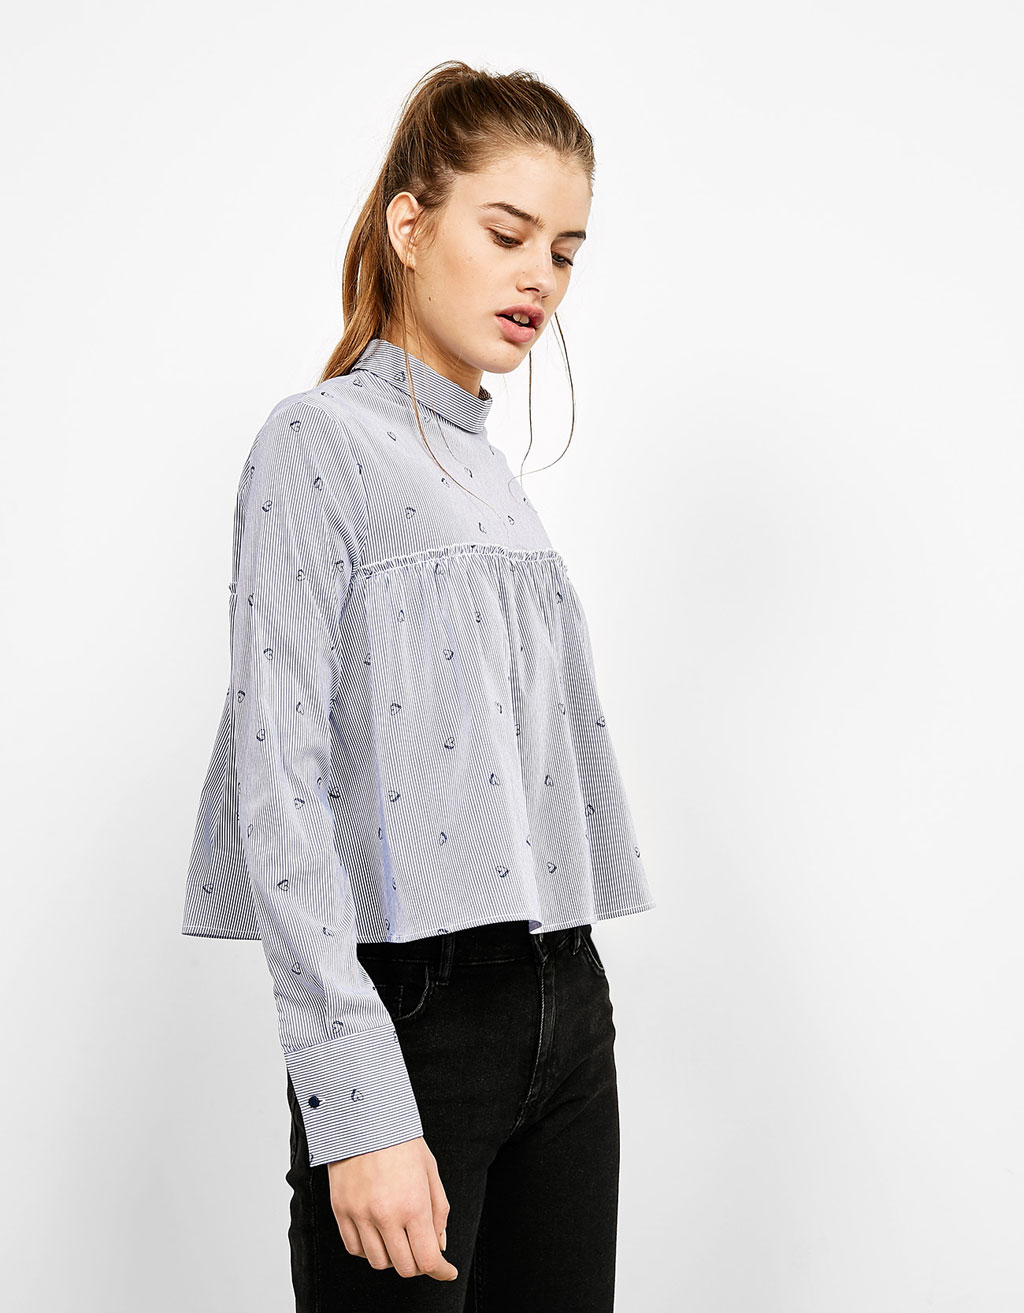 Blouse with front frill